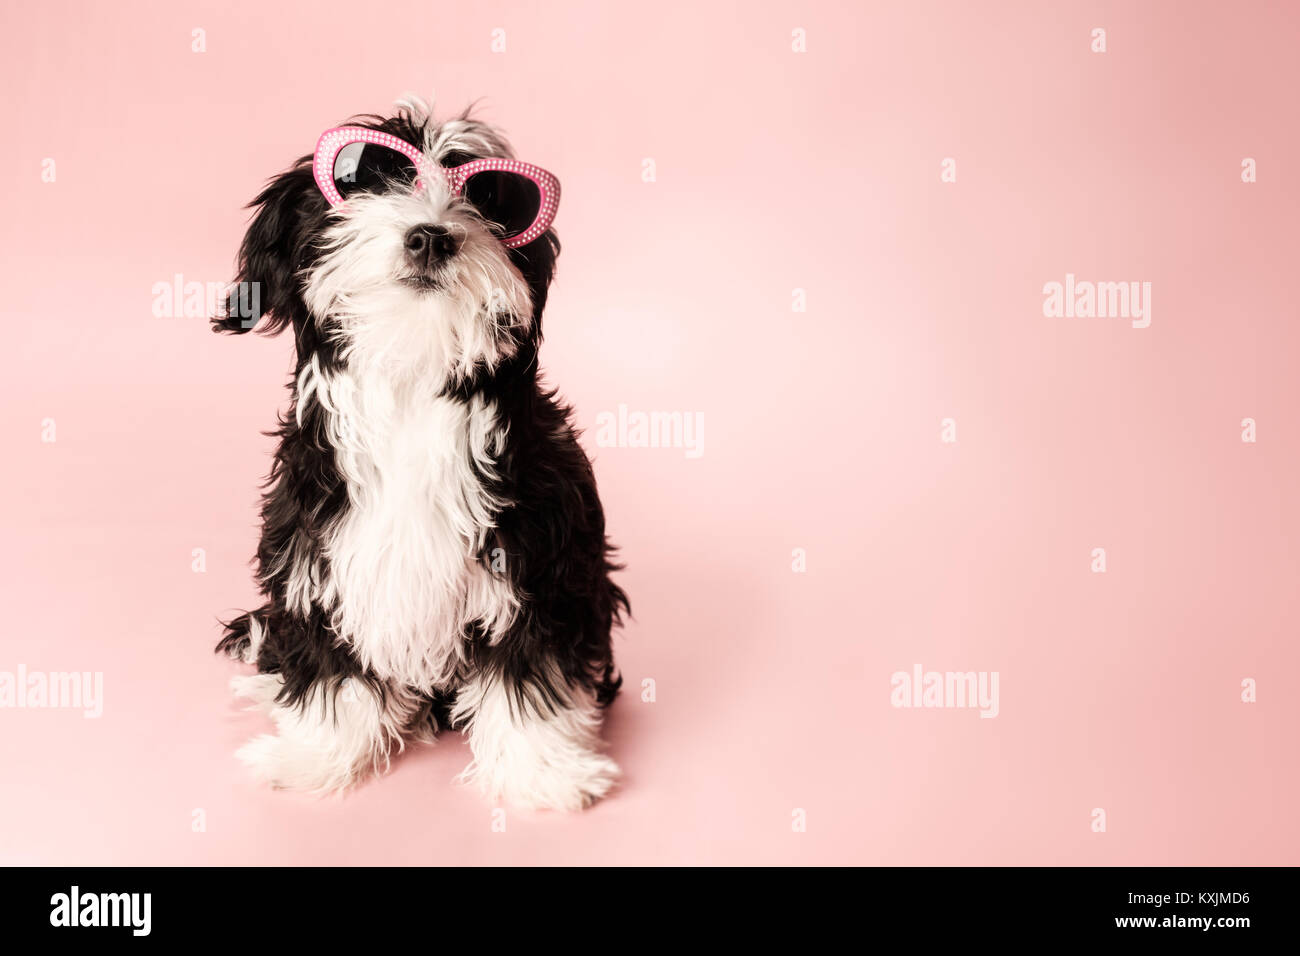 Dog Posing Wearing Sunglasses Cute Havaton Puppy Modeling In The